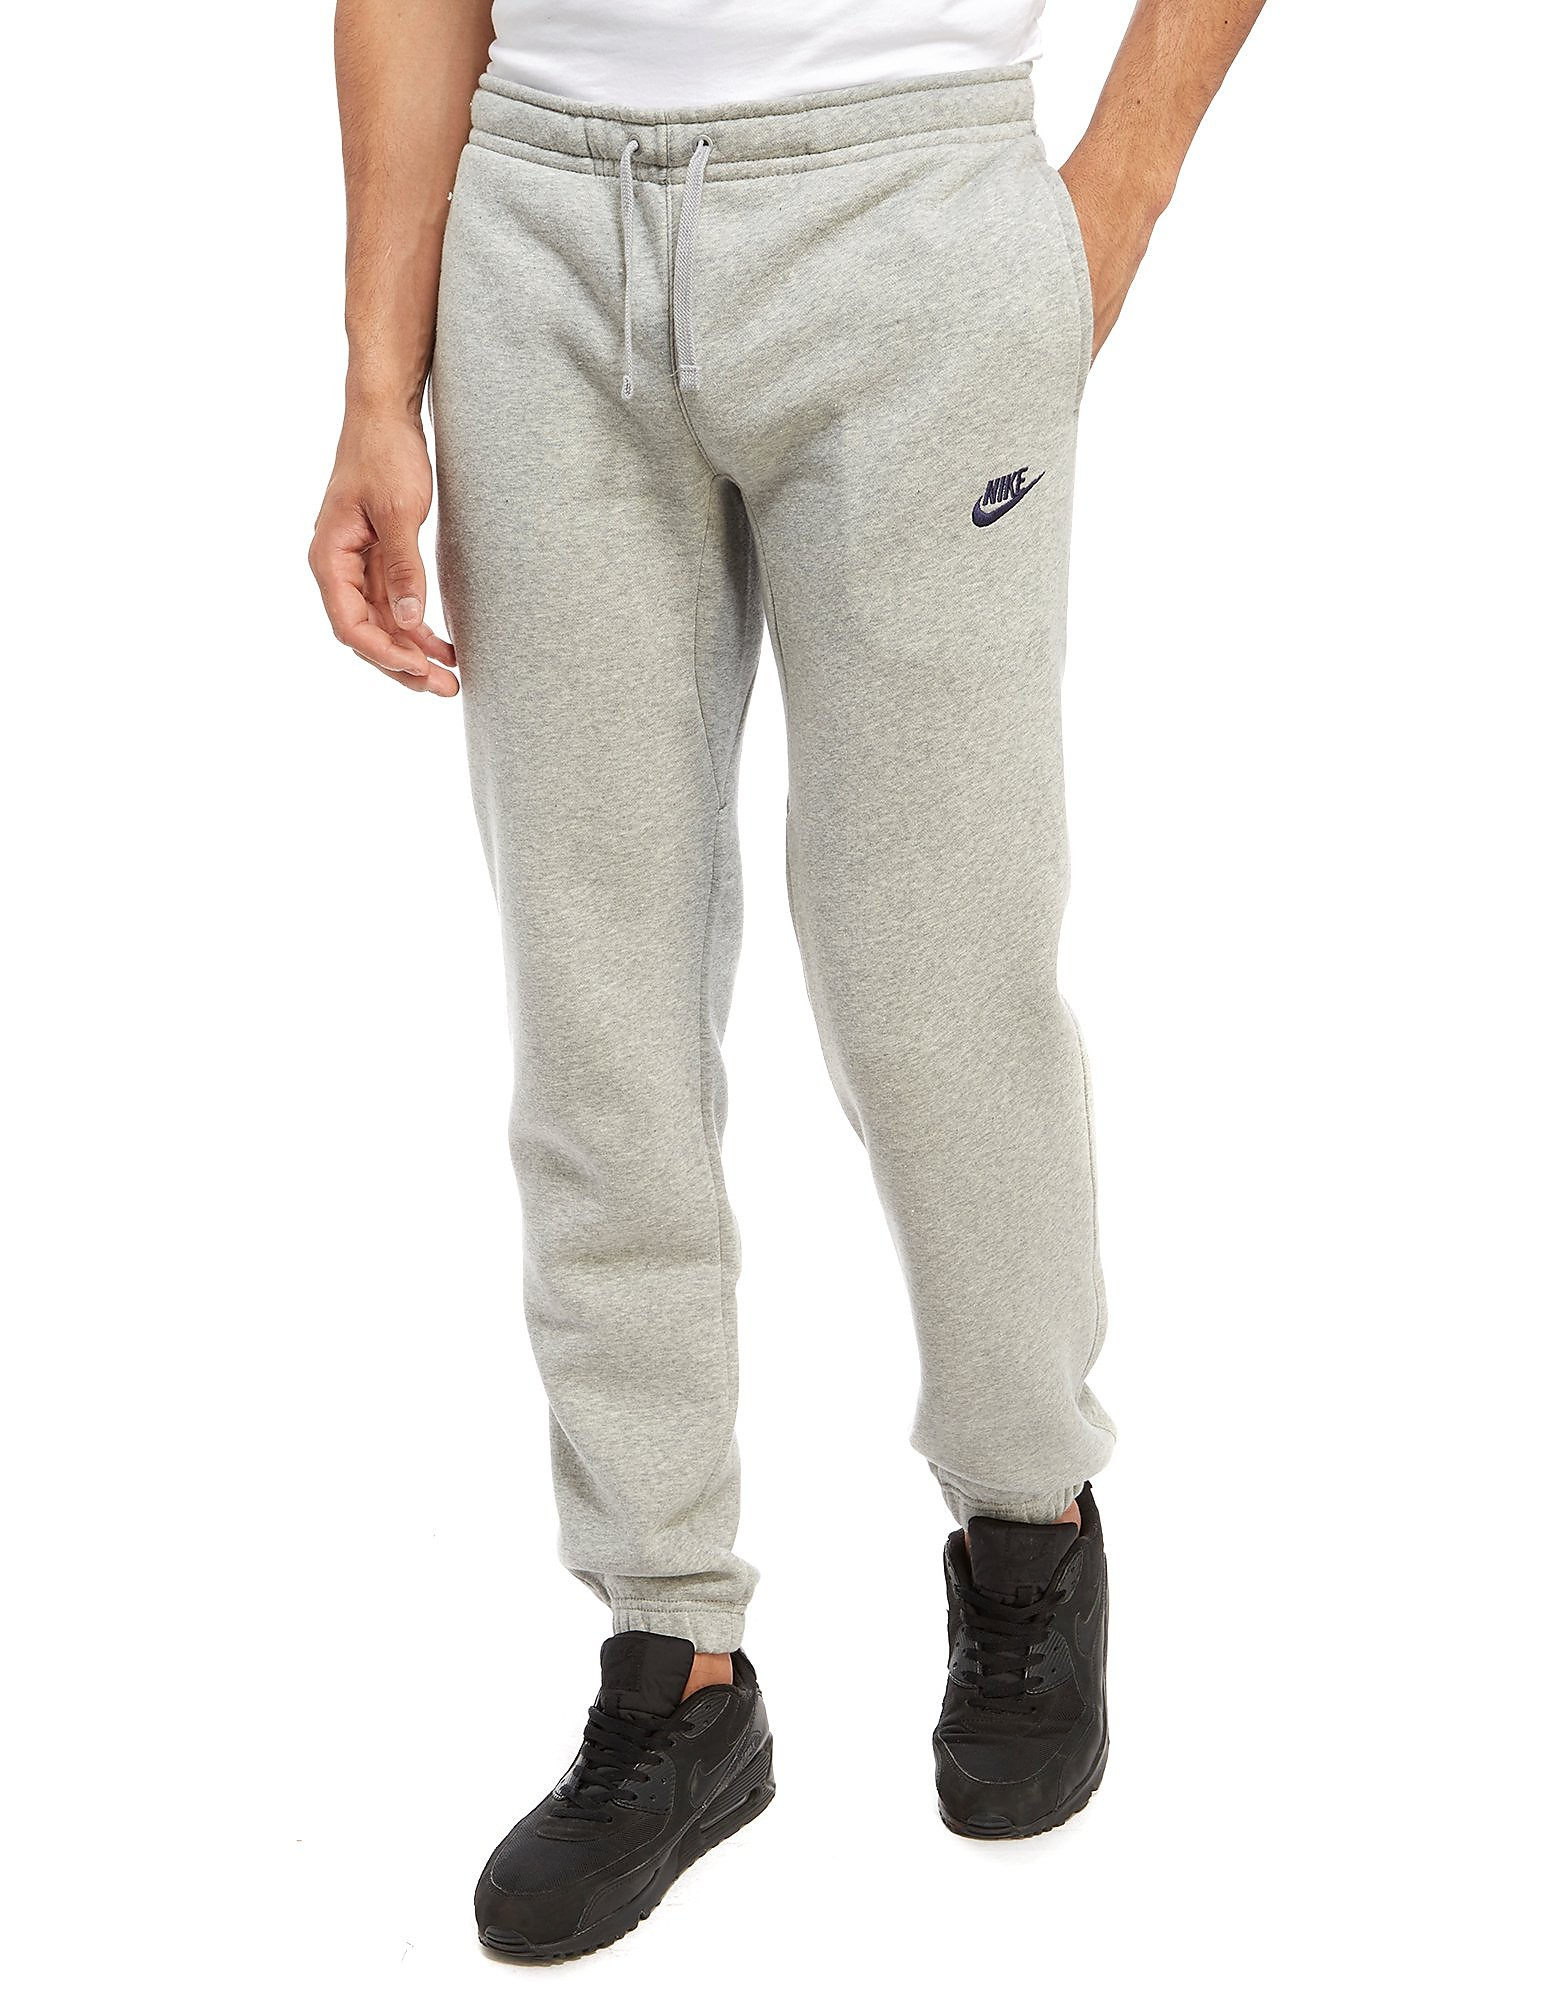 Nike Foundation Fleece Pants